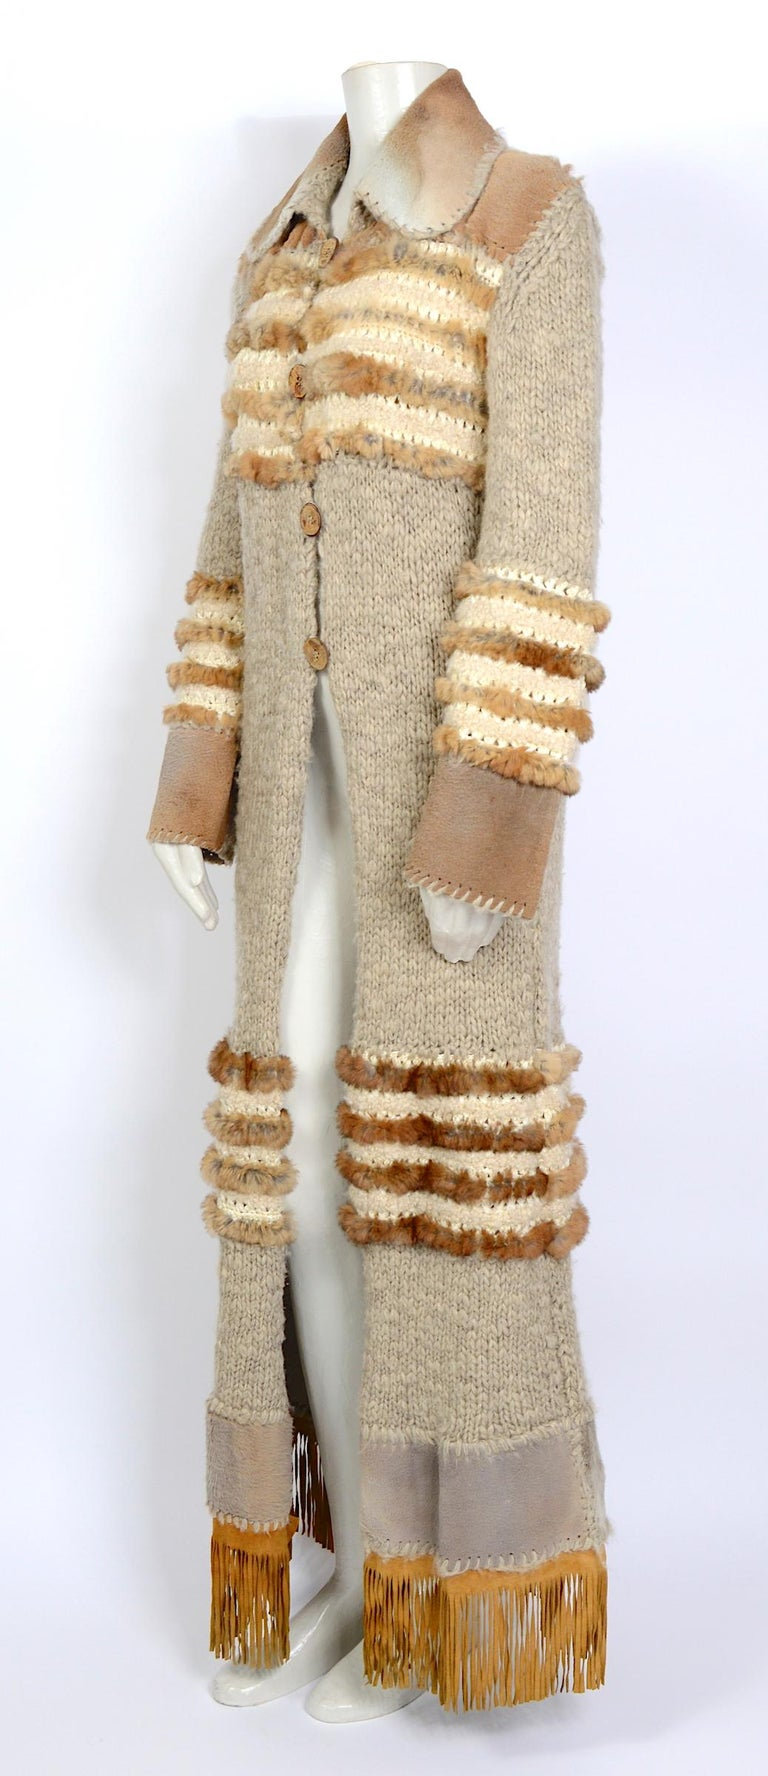 Christian Dior by John Galliano vintage fall 2000 yak cashmere knit and fur coat In Excellent Condition For Sale In Antwerp, BE